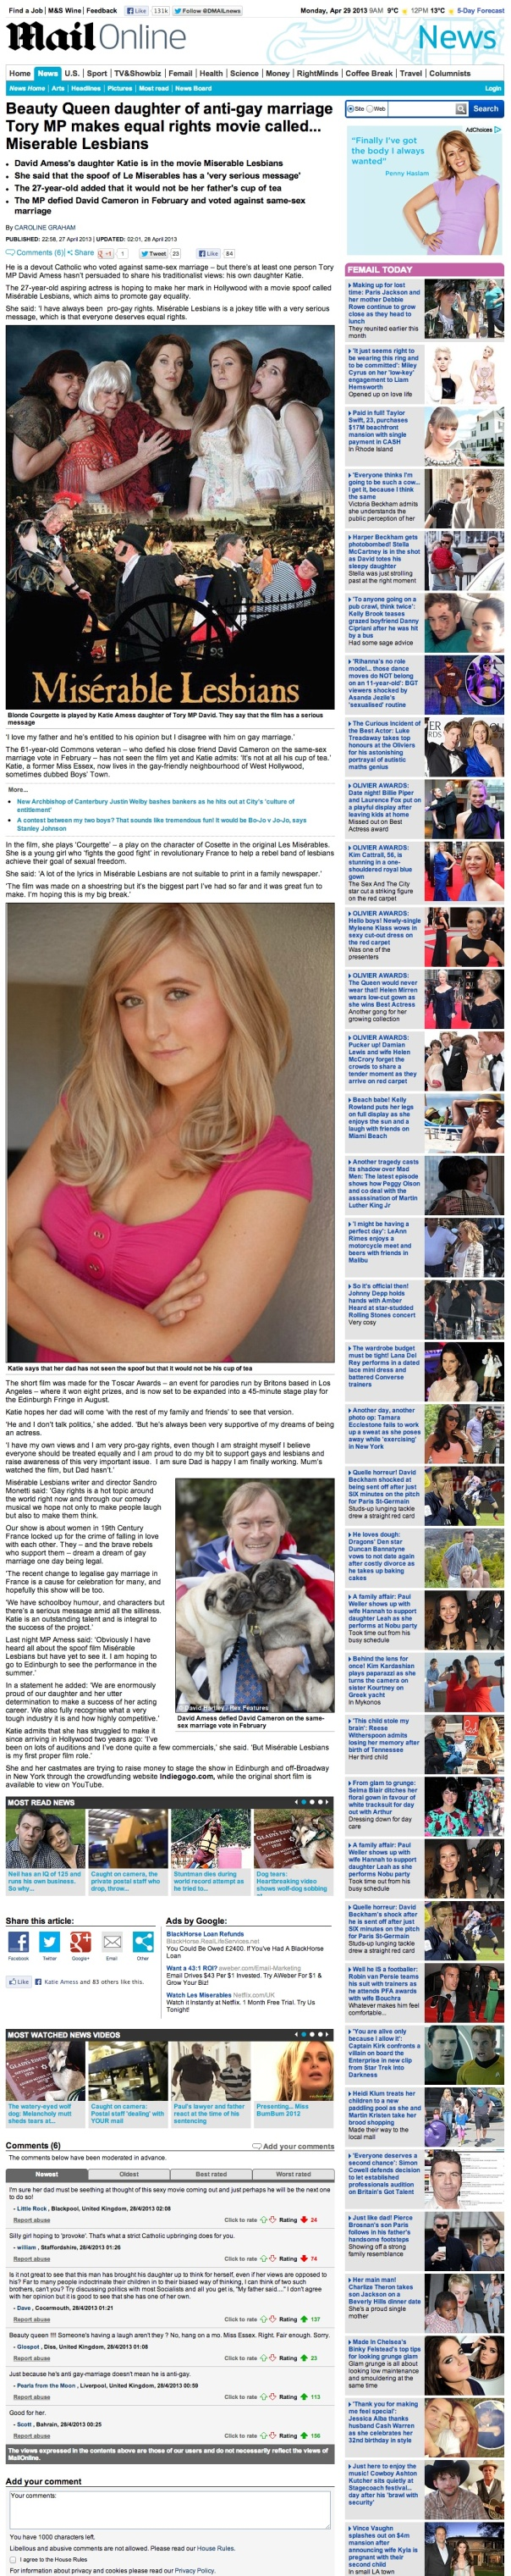 TT- Daily Mail April 13